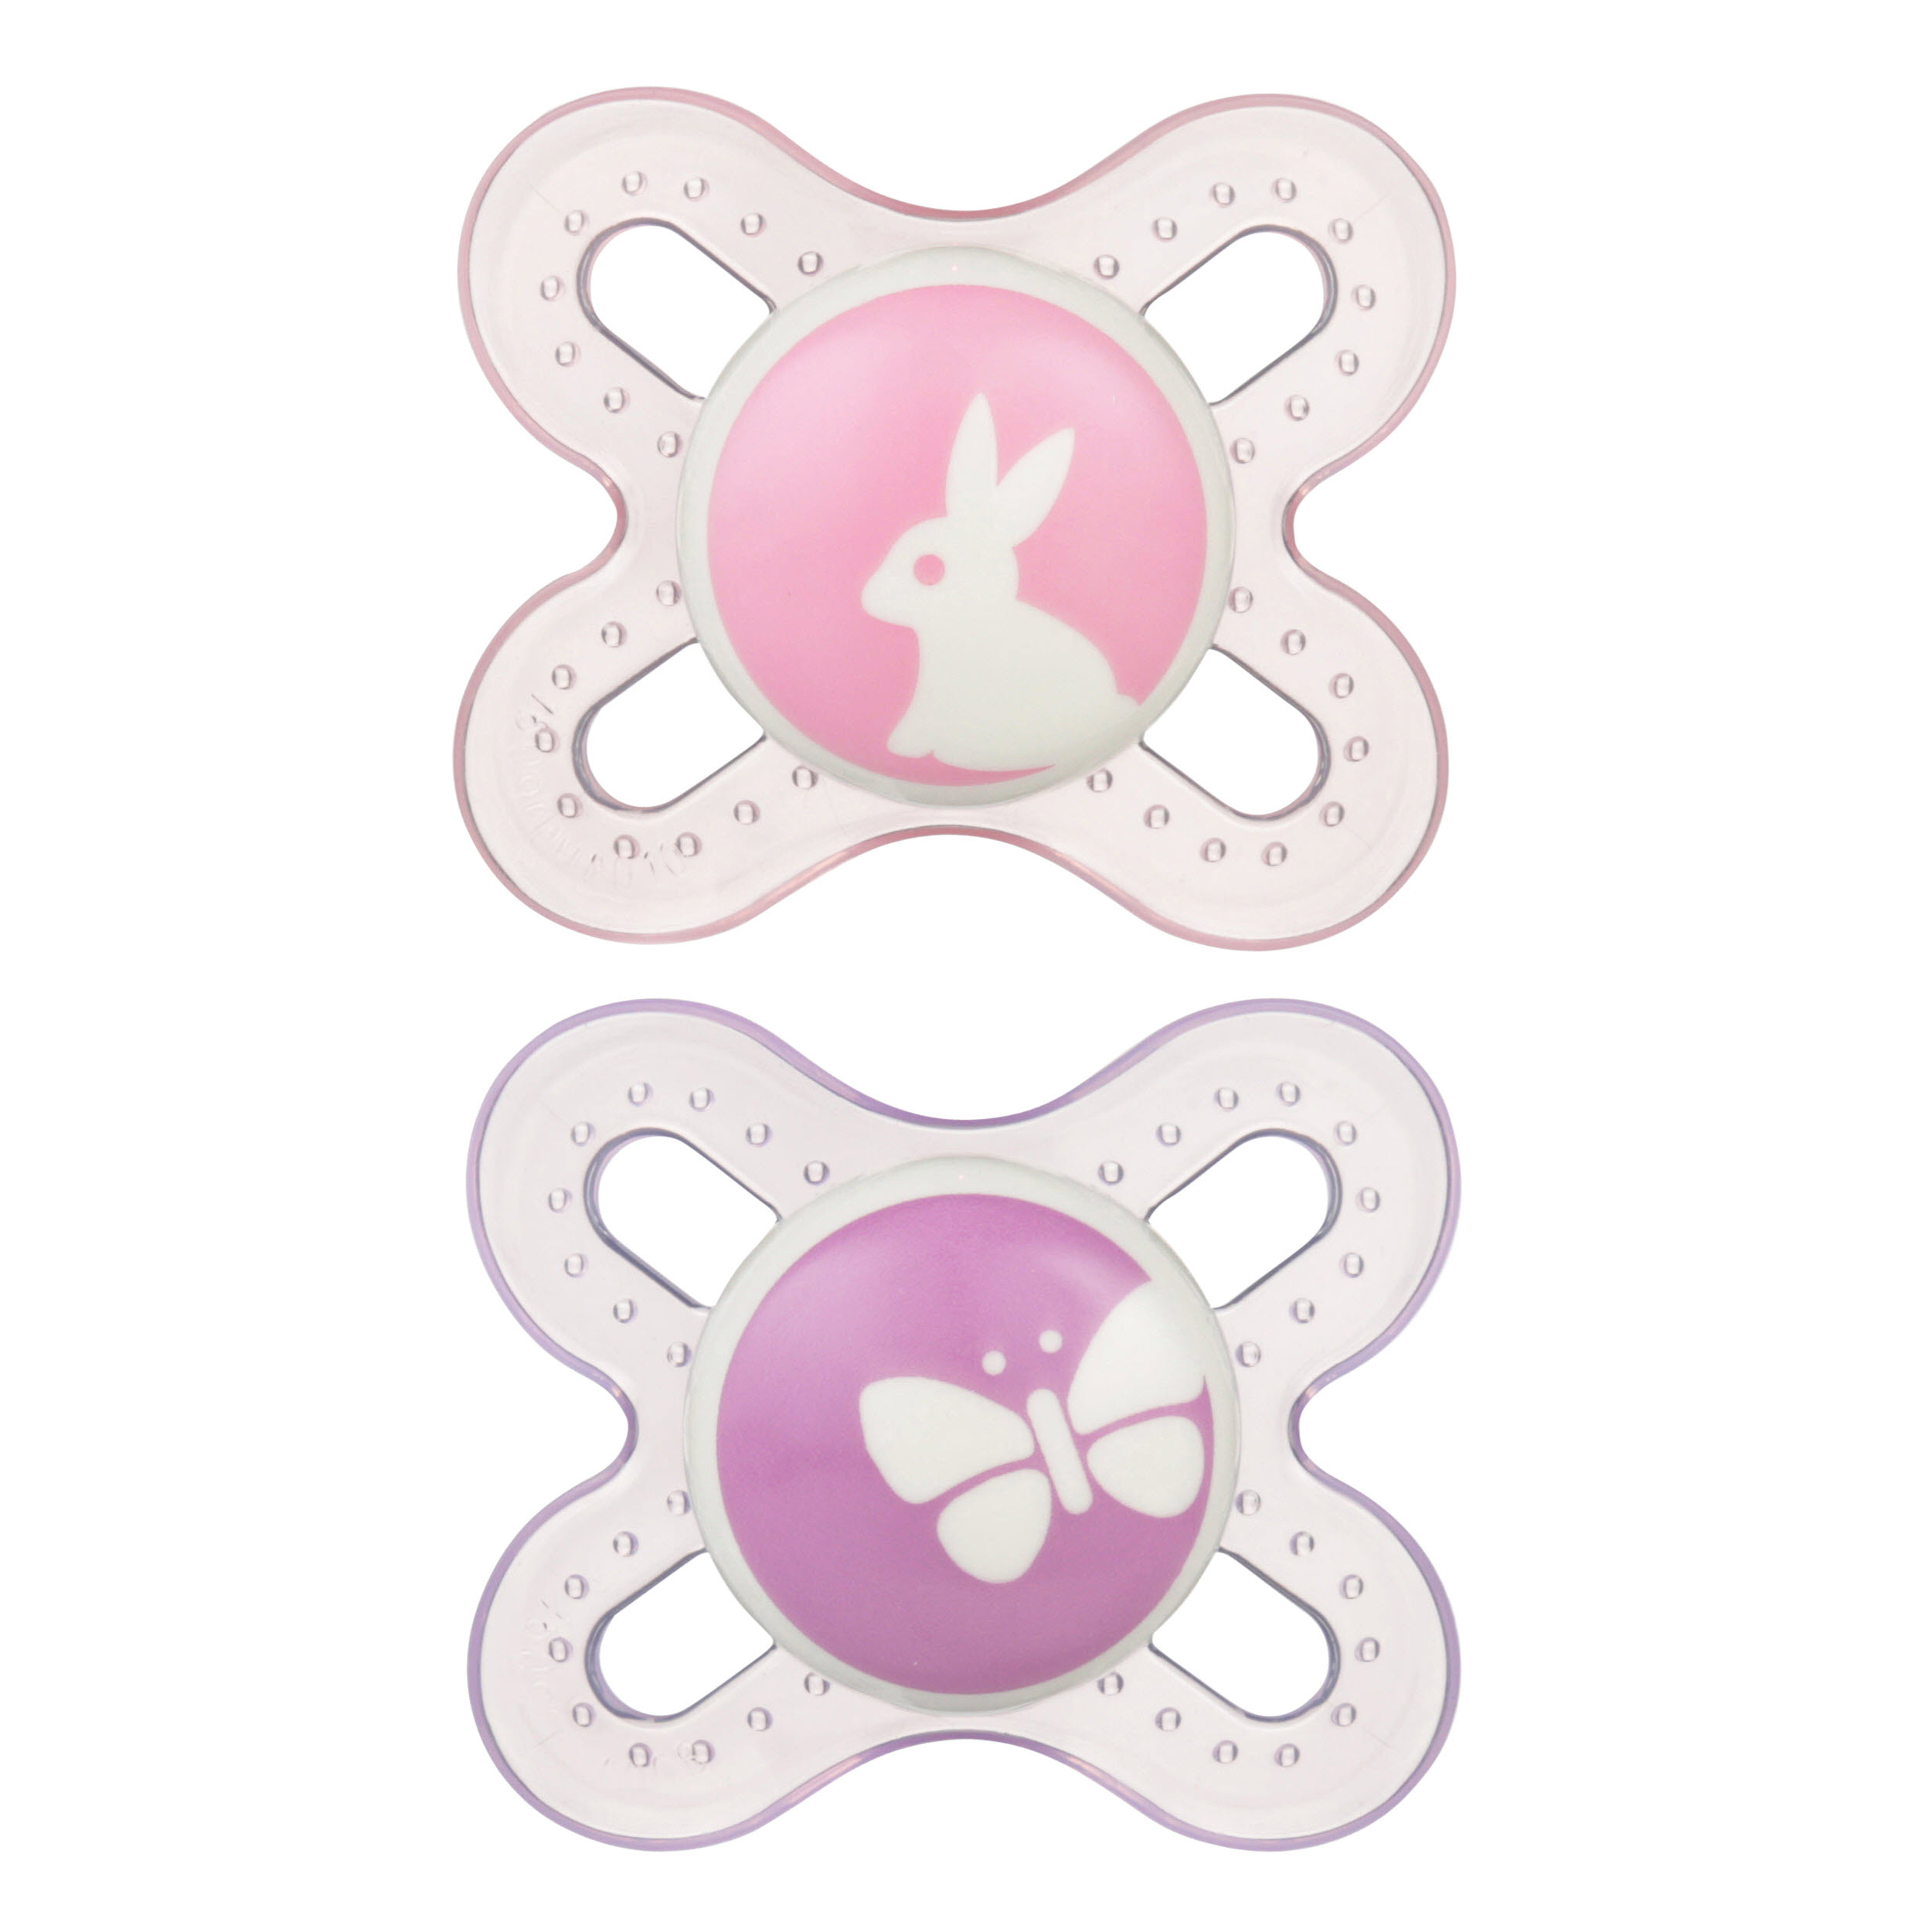 MAM Newborn Start Orthodontic Pacifier, 0+ Months, 2-Count, Girl